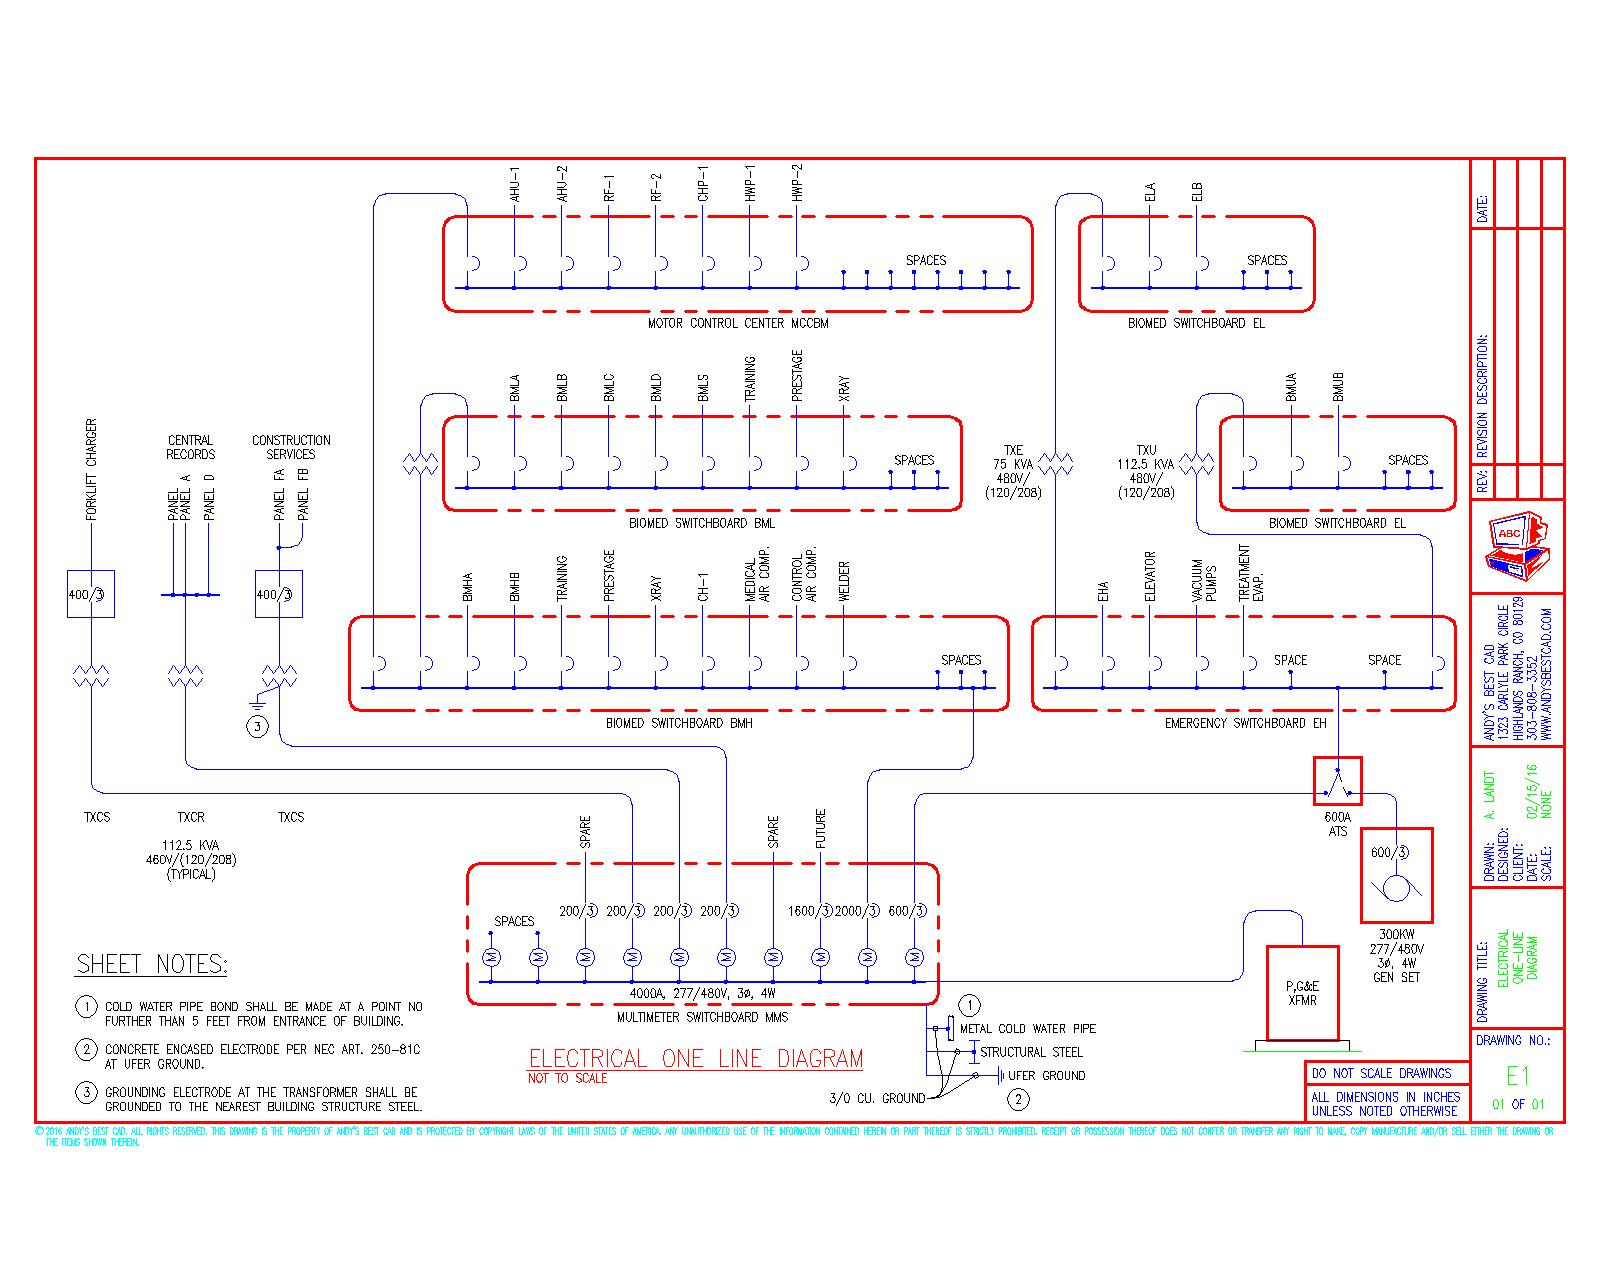 House Plan Autocad Hvac Service Free Drawing Sample At For Personal Use 1600x1280